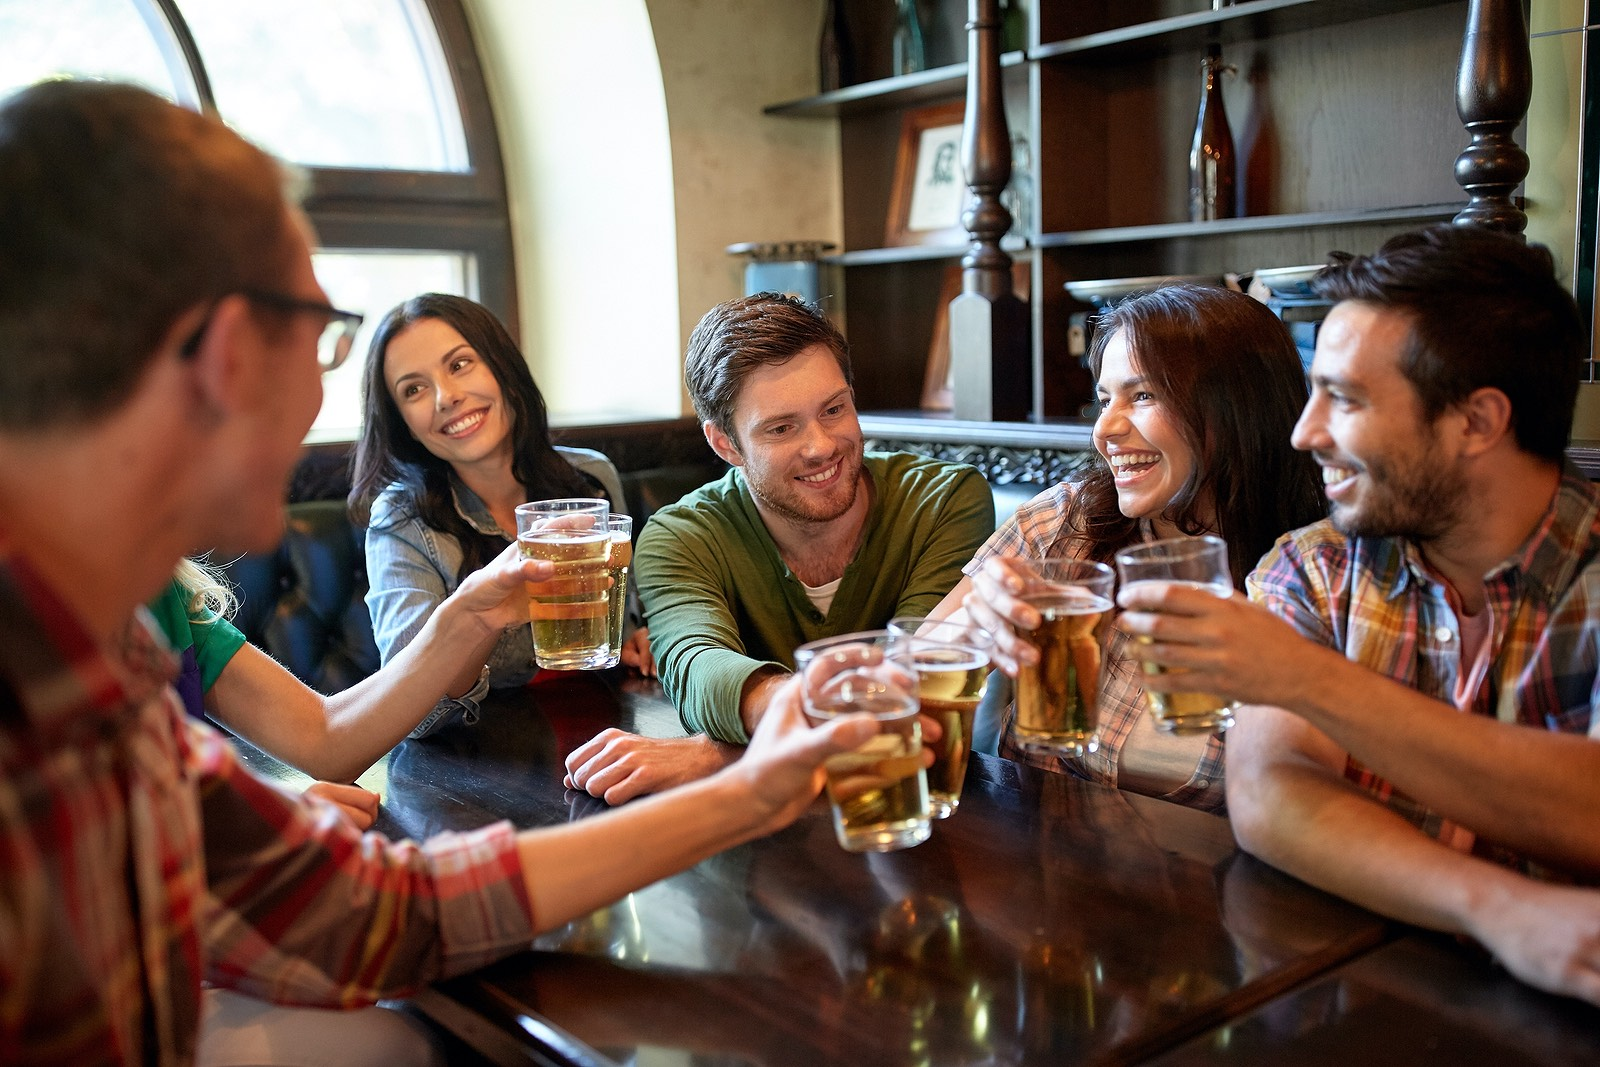 People, leisure, friendship and celebration concept – happy friends drinking draft beer and clinking glasses at bar or pub